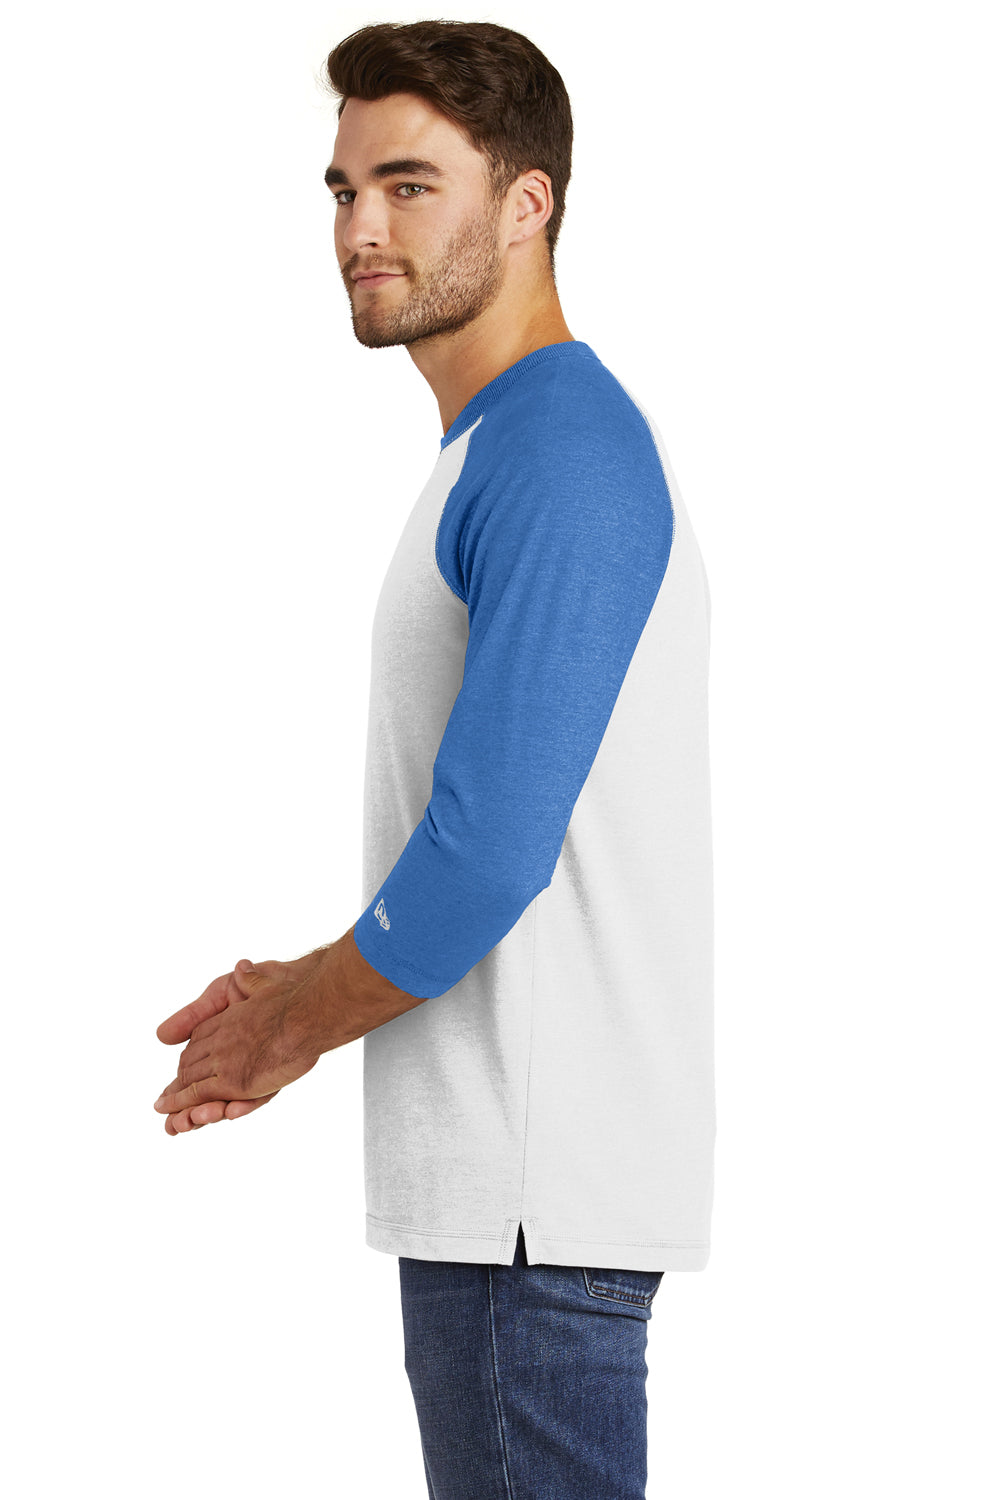 New Era NEA121 Mens Sueded 3/4 Sleeve Crewneck T-Shirt Heather Royal Blue/White Side